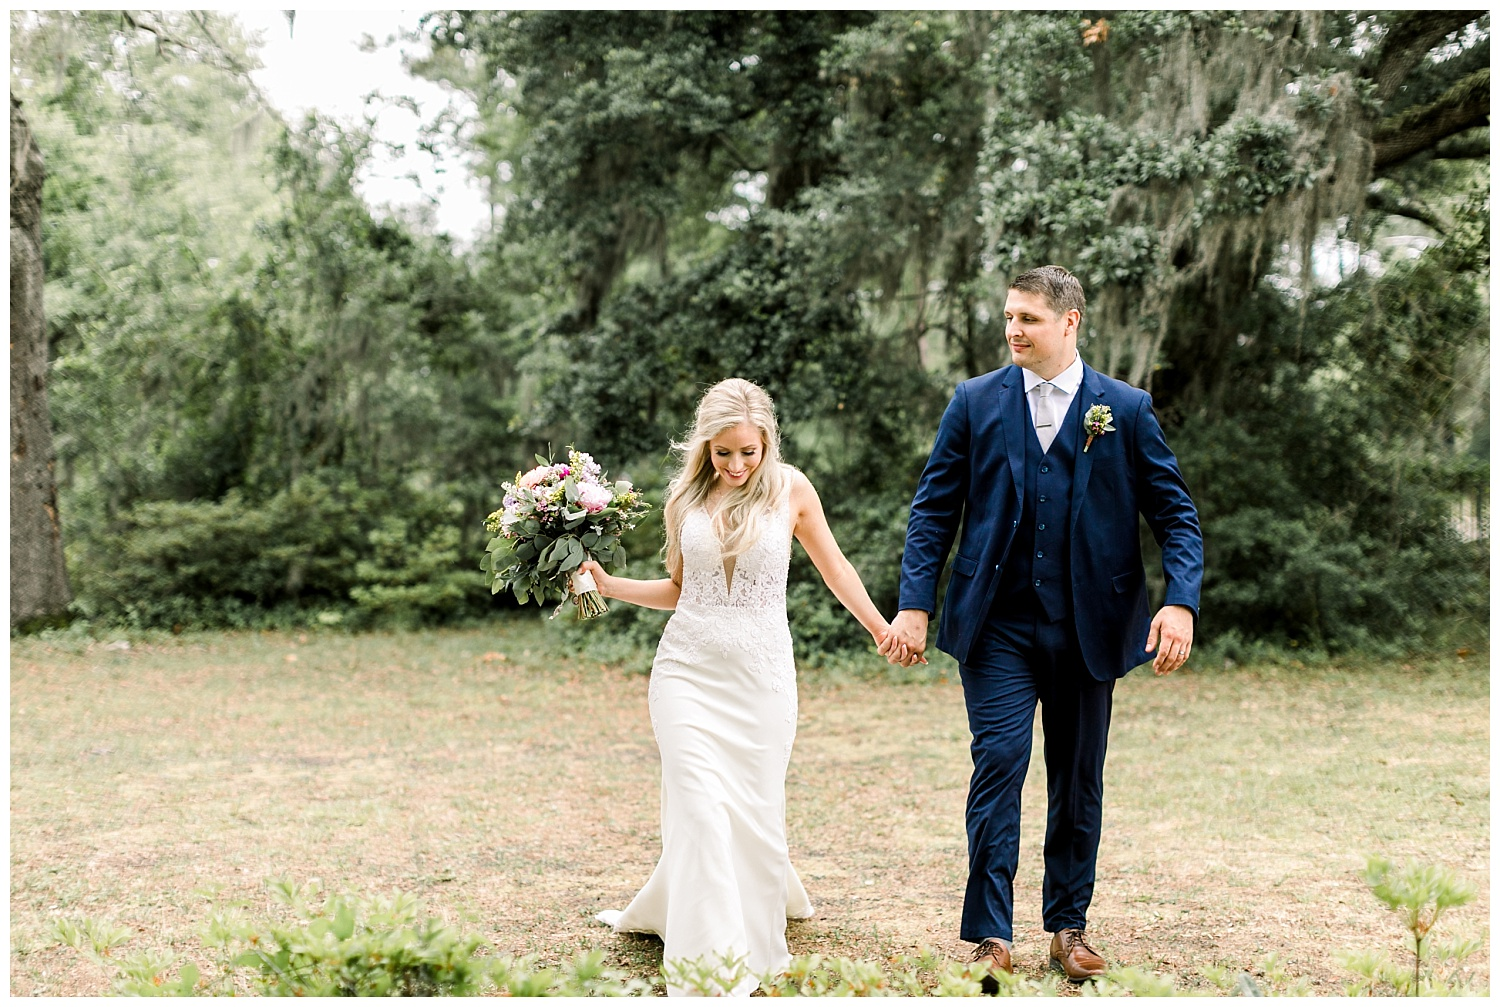 Wrightsville Manor Wedding Wilmington NC_Erin L. Taylor Photography_0044.jpg